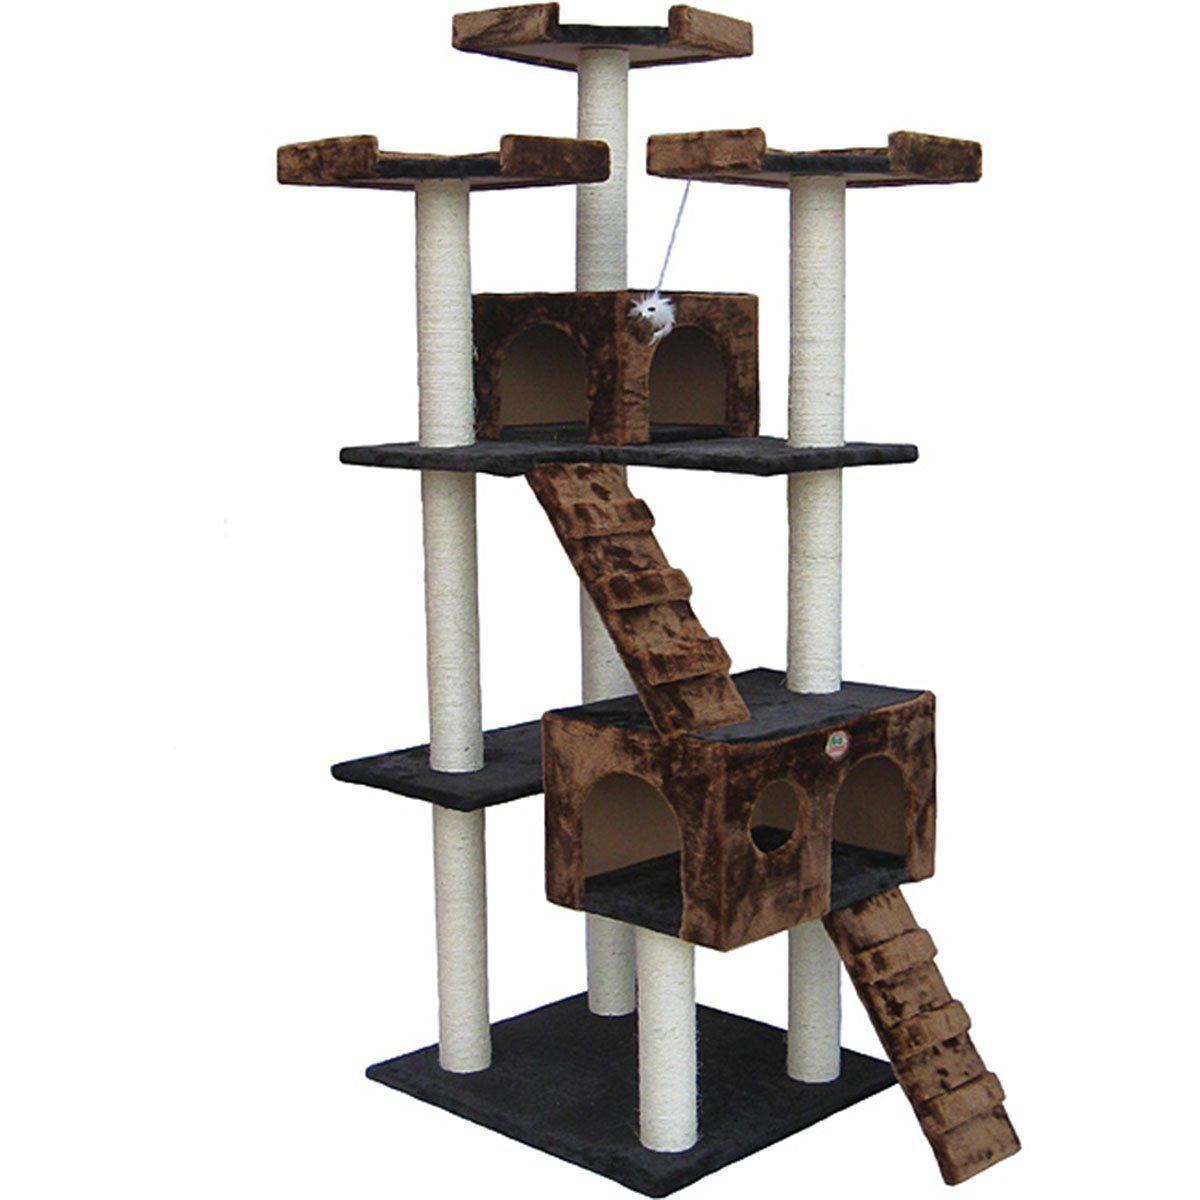 Go cat Club 72 inch Cat Tree * Quickly view this special